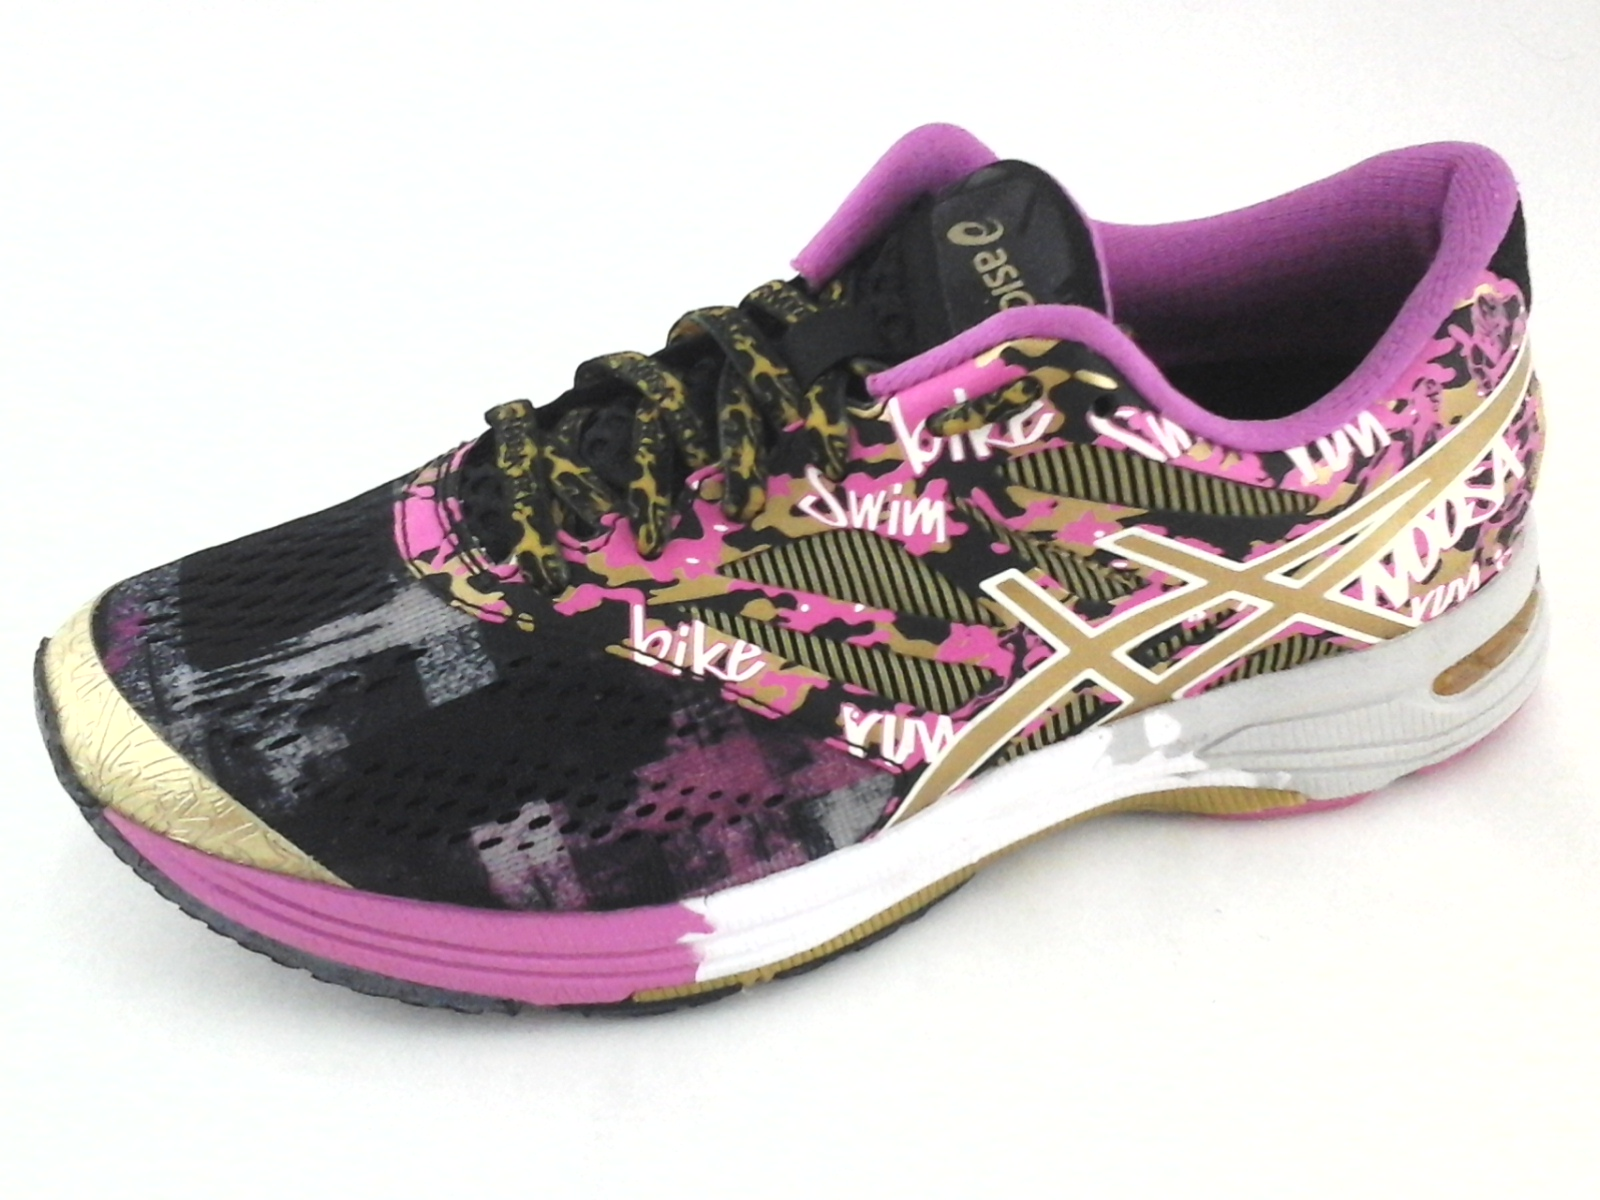 7e2b1be10f ASICS Gel Noosa TRI-10 T5M9N Breast Cancer Pink Gold Sneakers US 7 EU 38   160